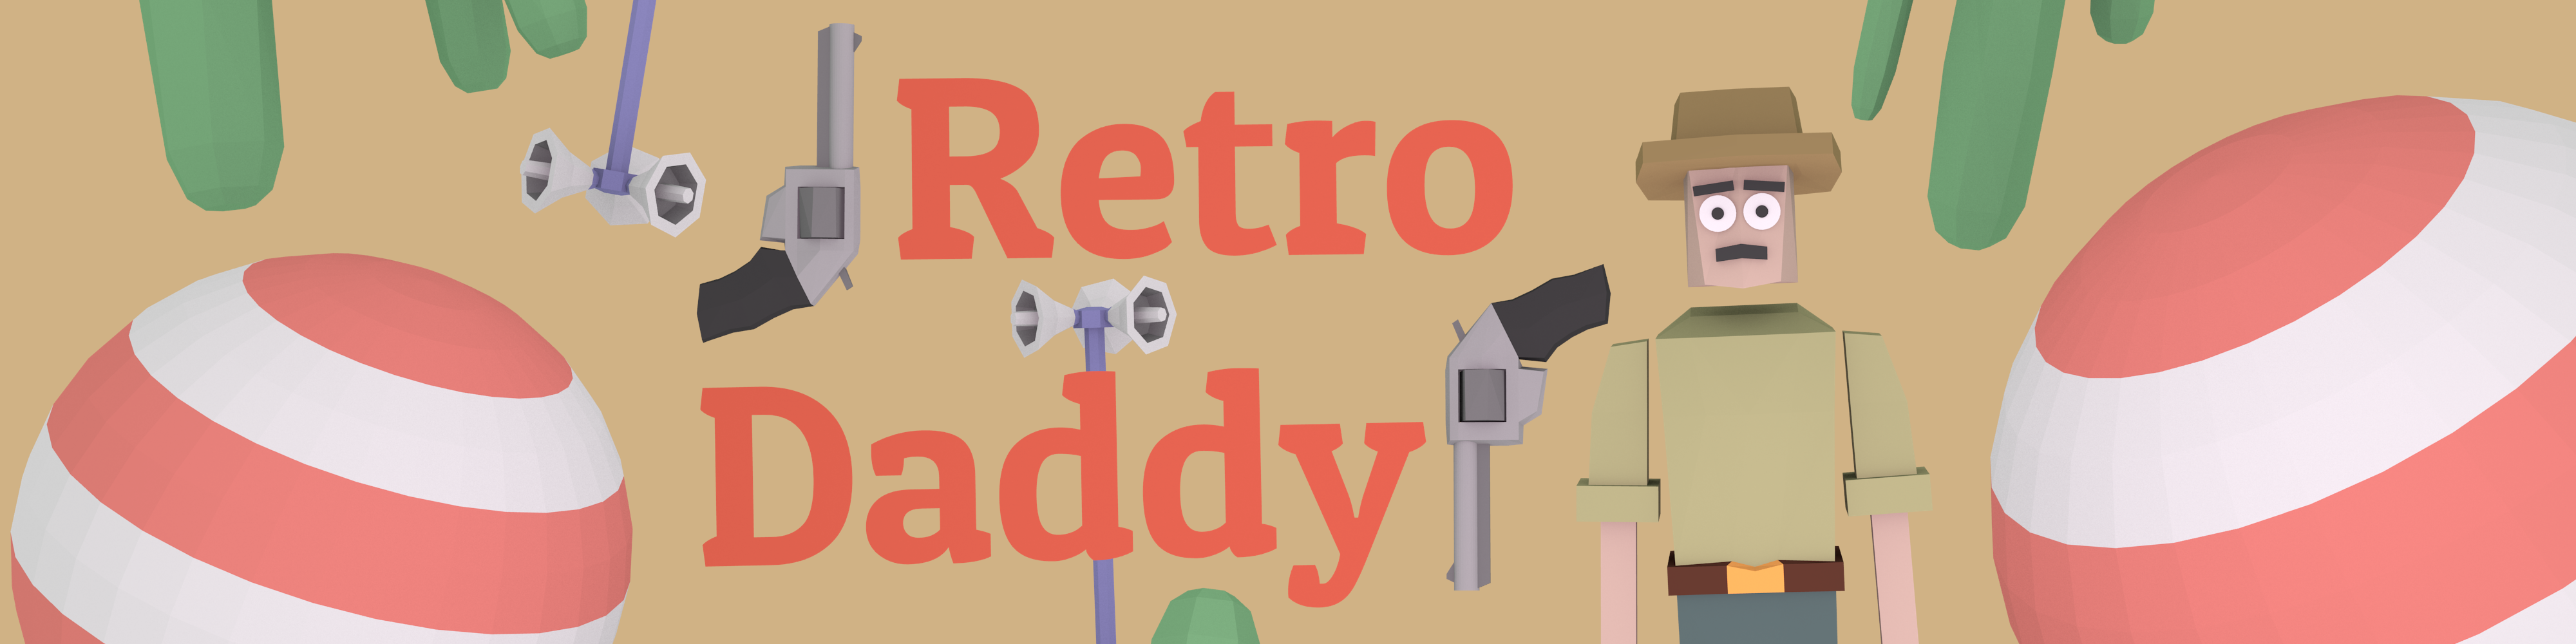 RetroDaddy